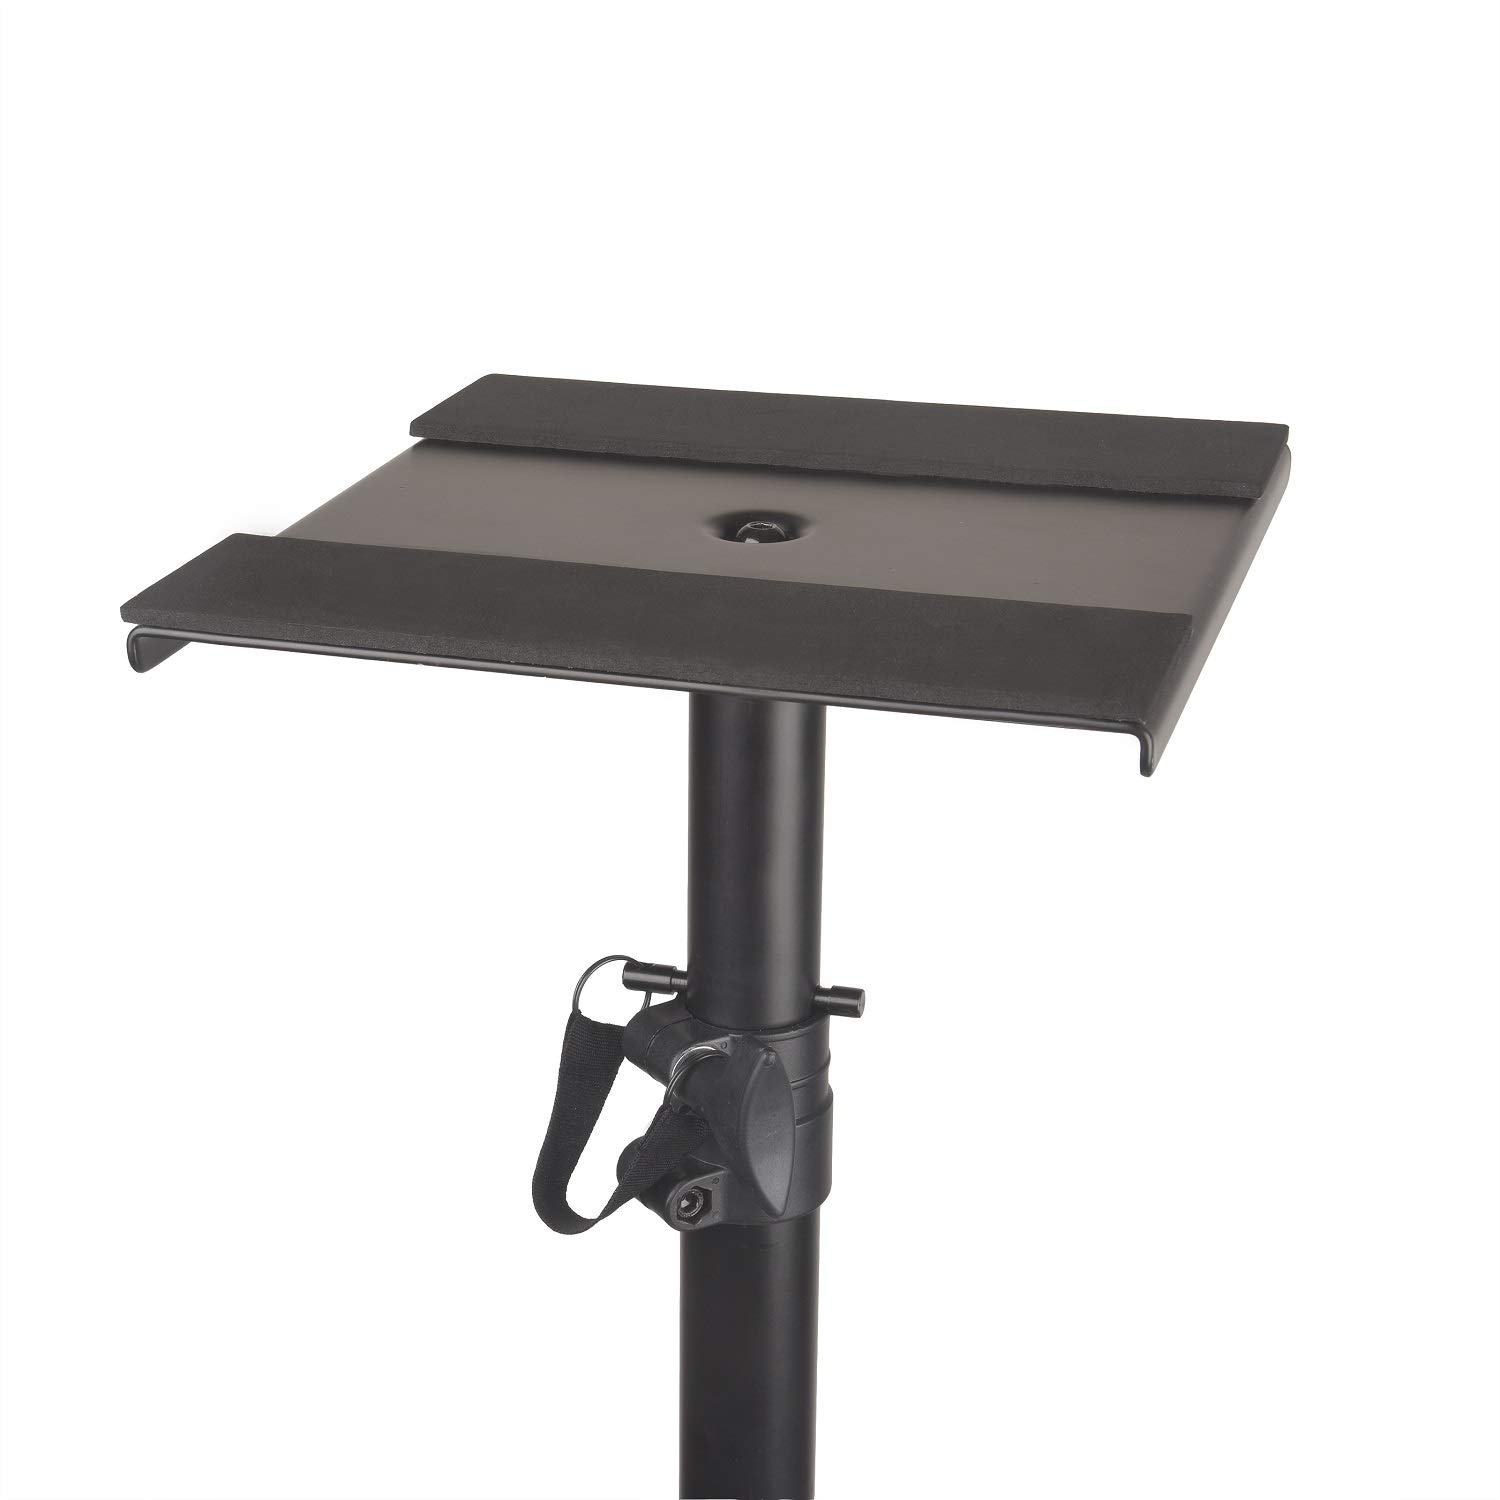 PAIR of Studio Monitor Speaker Stands by Hola! Music, Professional Heavy-Duty Tripod Structure, Adjustable Height, Model HPS-600MS by Hola! Music (Image #3)